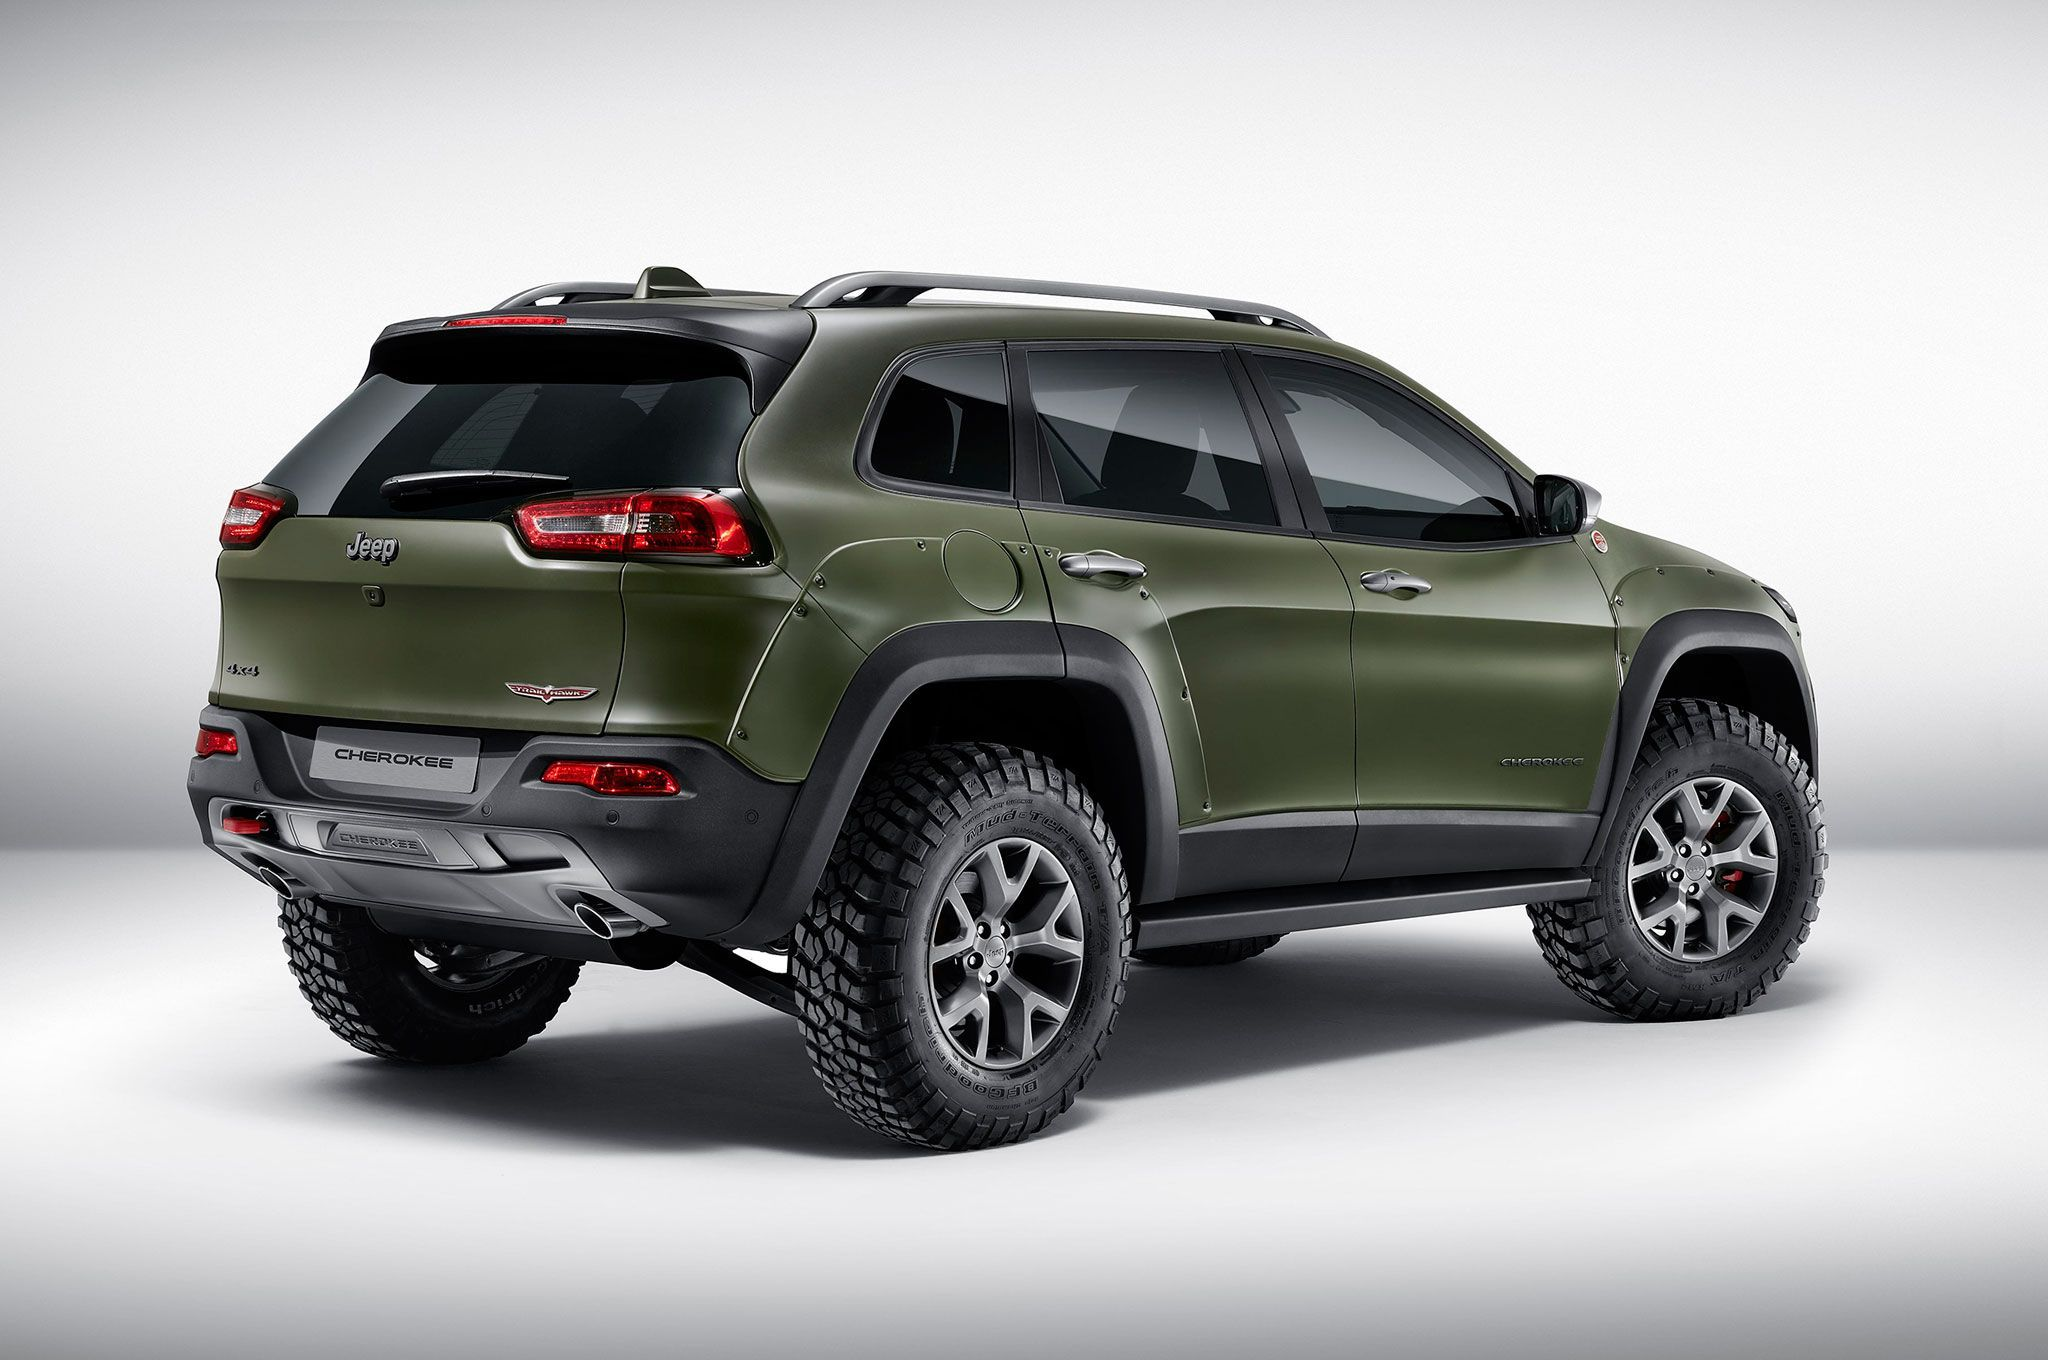 Jeep Cherokee Krawler Diesel Wrangler Rubicon Sunriser And Renegade Trailhawk Unveiled In Frankfurt Jeep Cherokee Jeep Jeep Suv